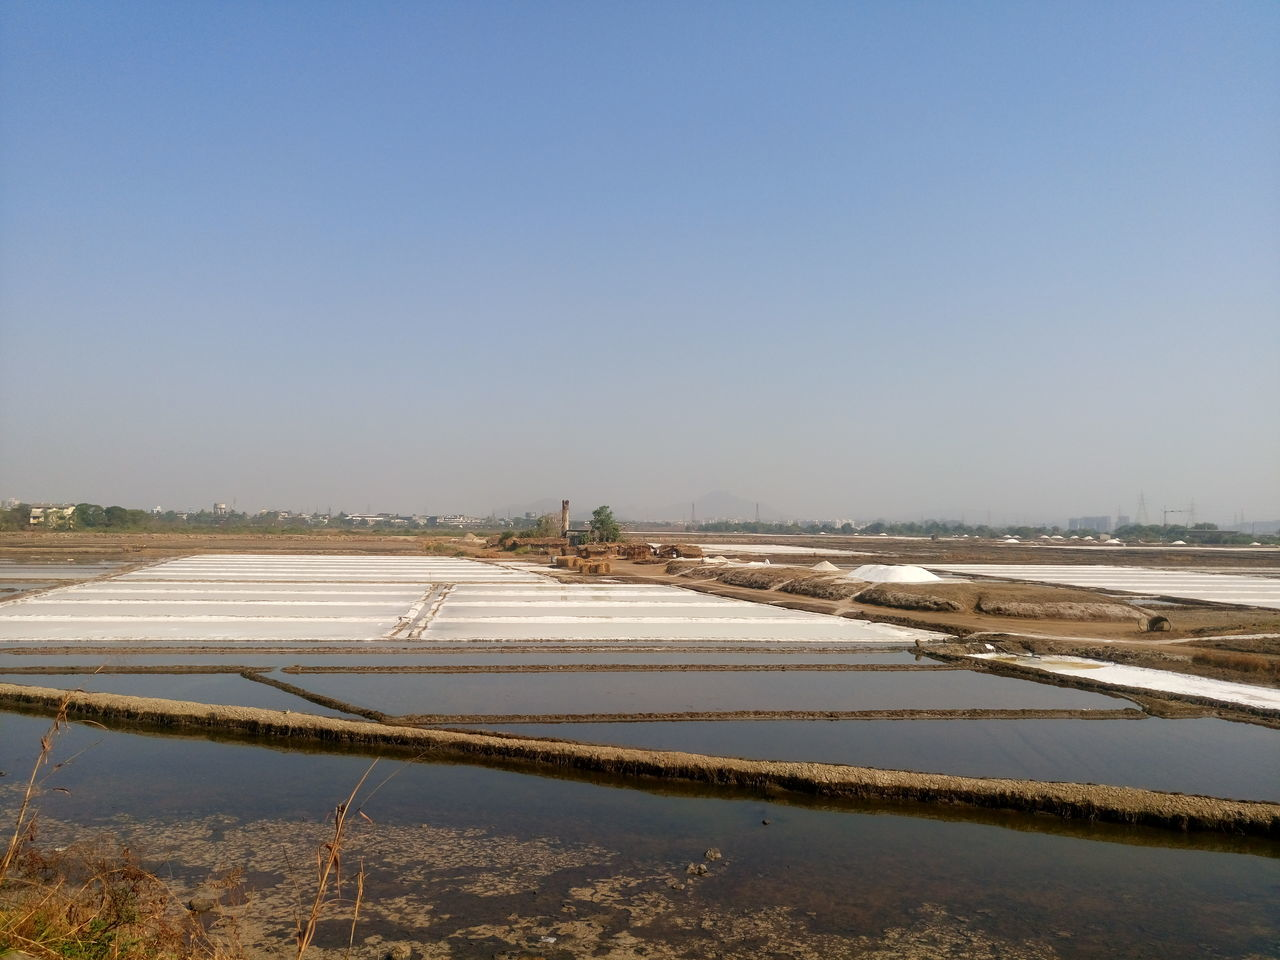 Agriculture Beauty In Nature Clear Sky Day Landscape Nature No People Outdoors Salt - Mineral Salt Basin Salt Flat Scenics Sky Snow Tranquil Scene Tranquility Water Winter